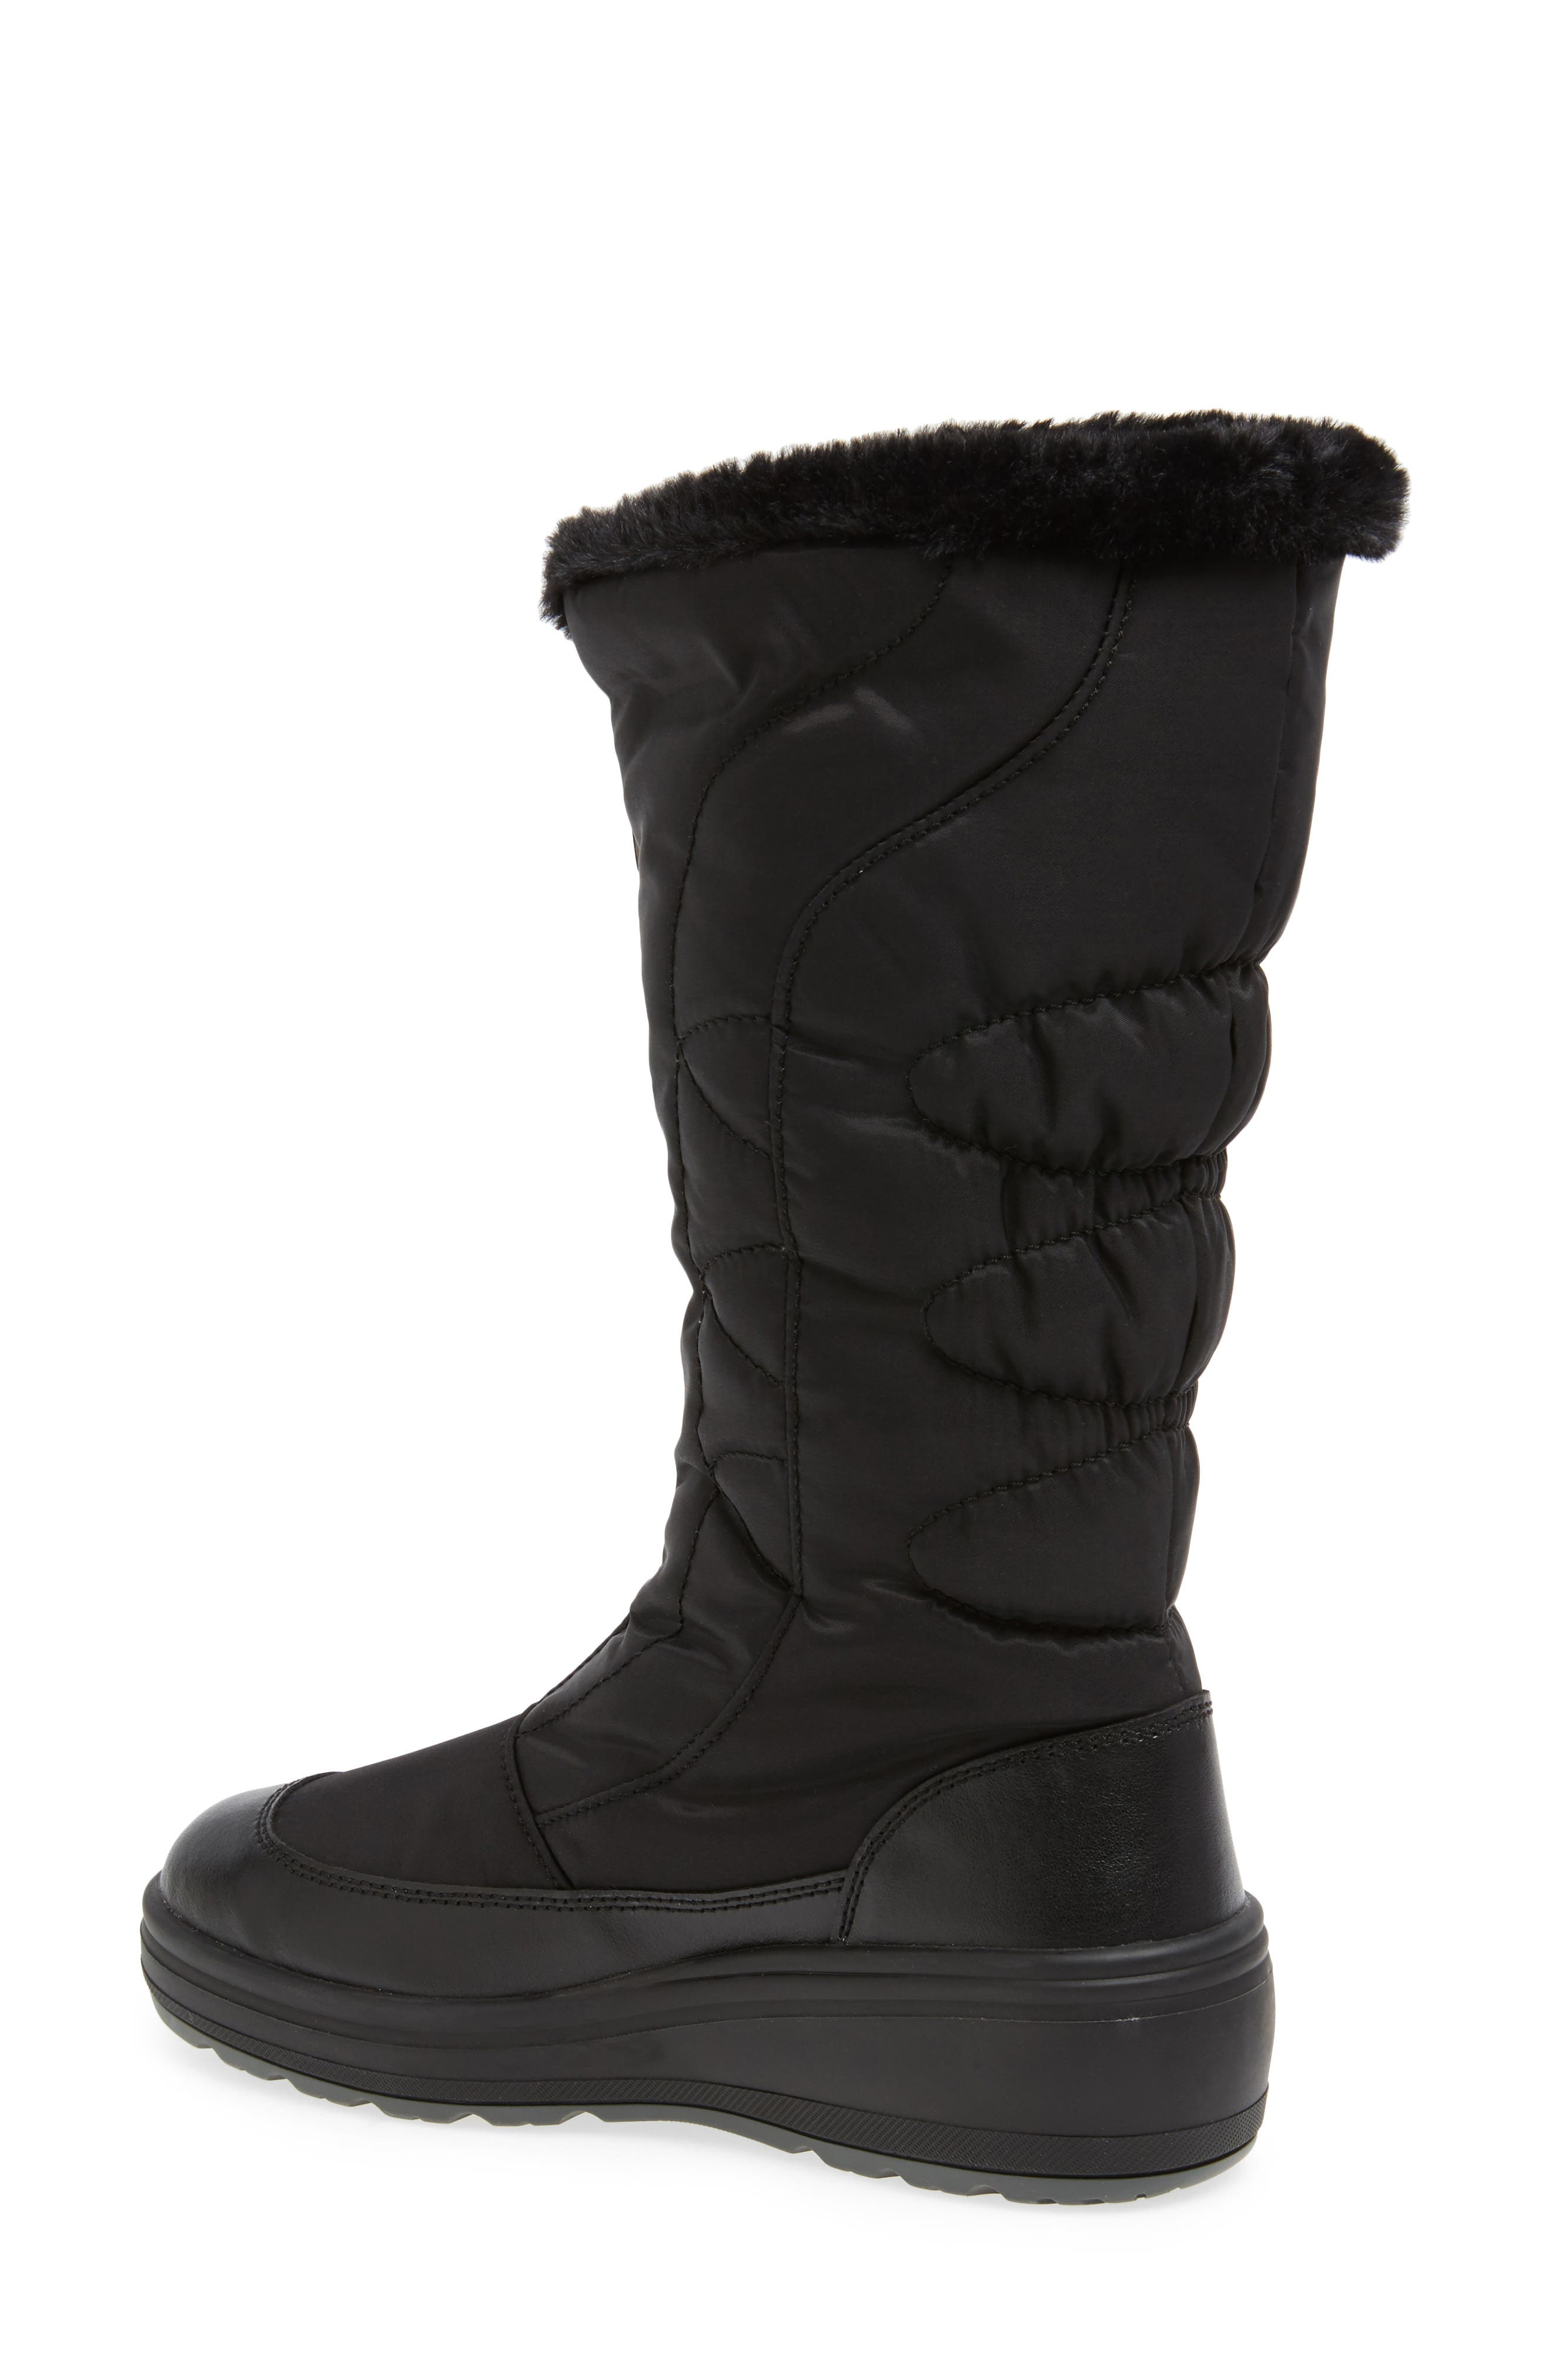 Fusion Weatherproof Boot,                             Alternate thumbnail 2, color,                             001